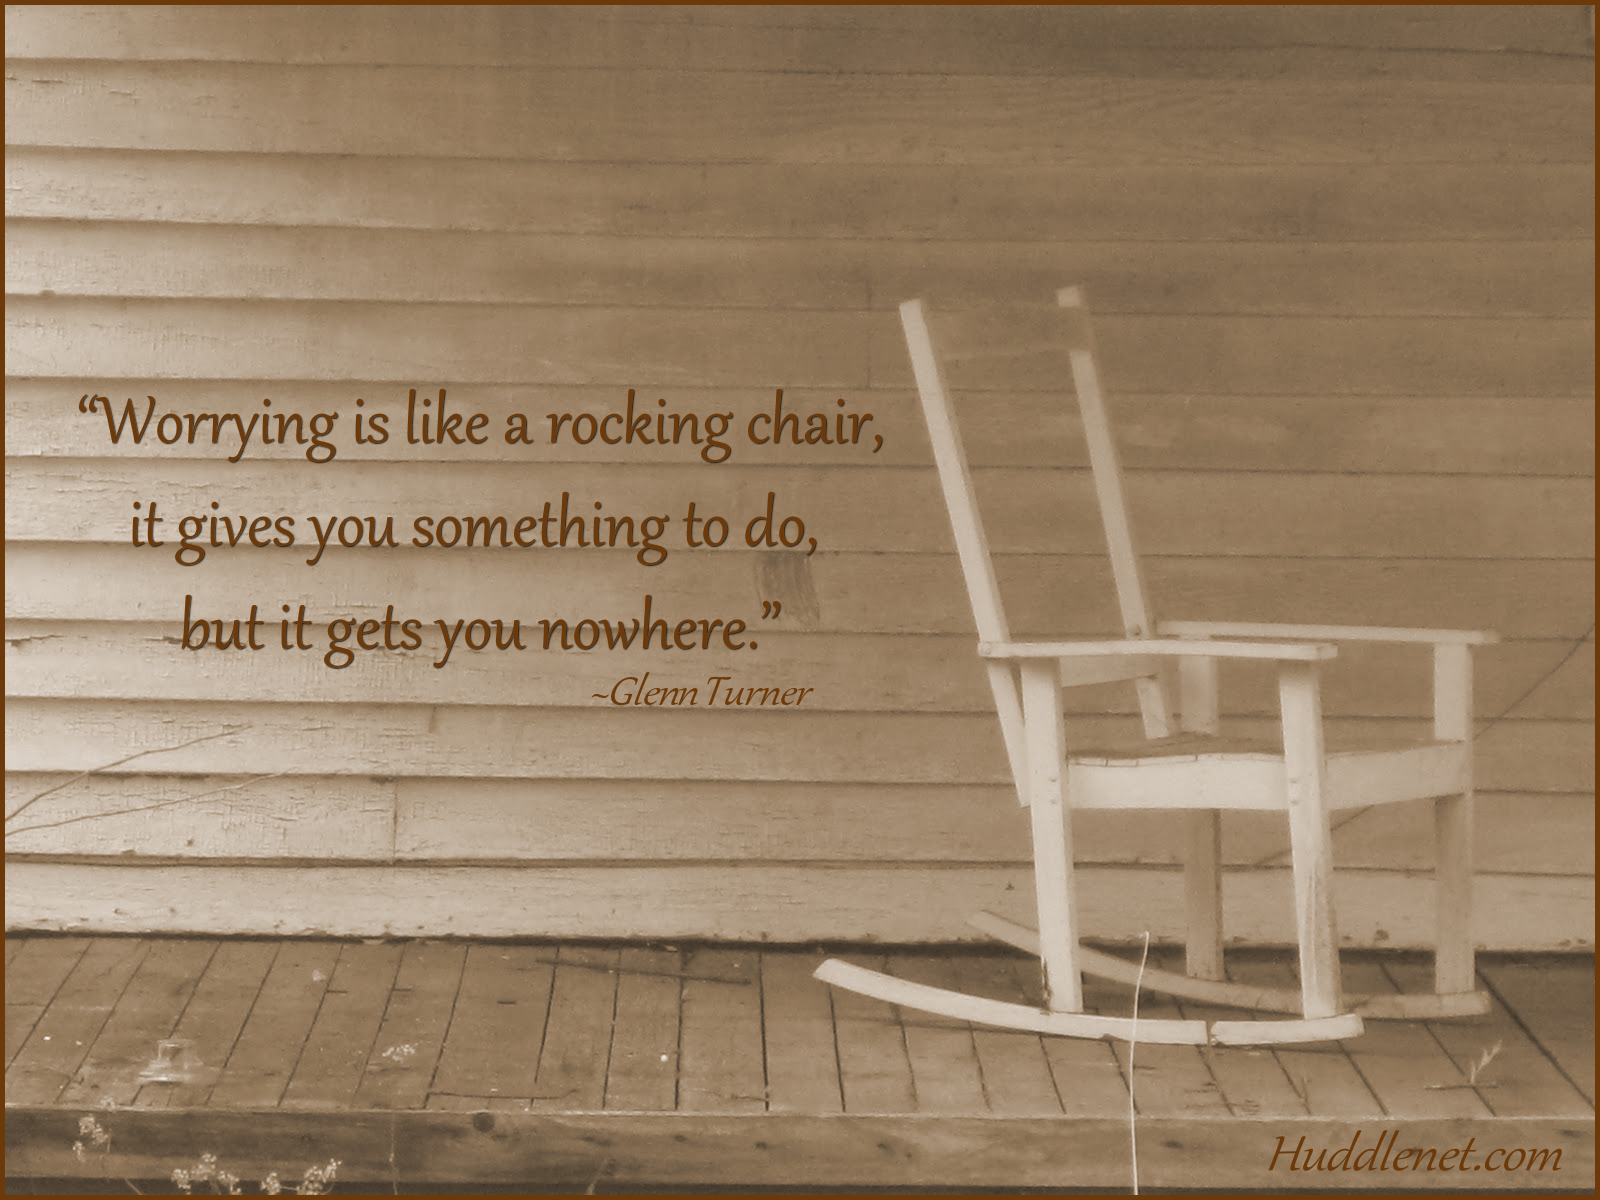 Worrying is like a rocking chair, it gives you something to do, but it gets you nowhere. - Glen Turner   Huddlenet.com